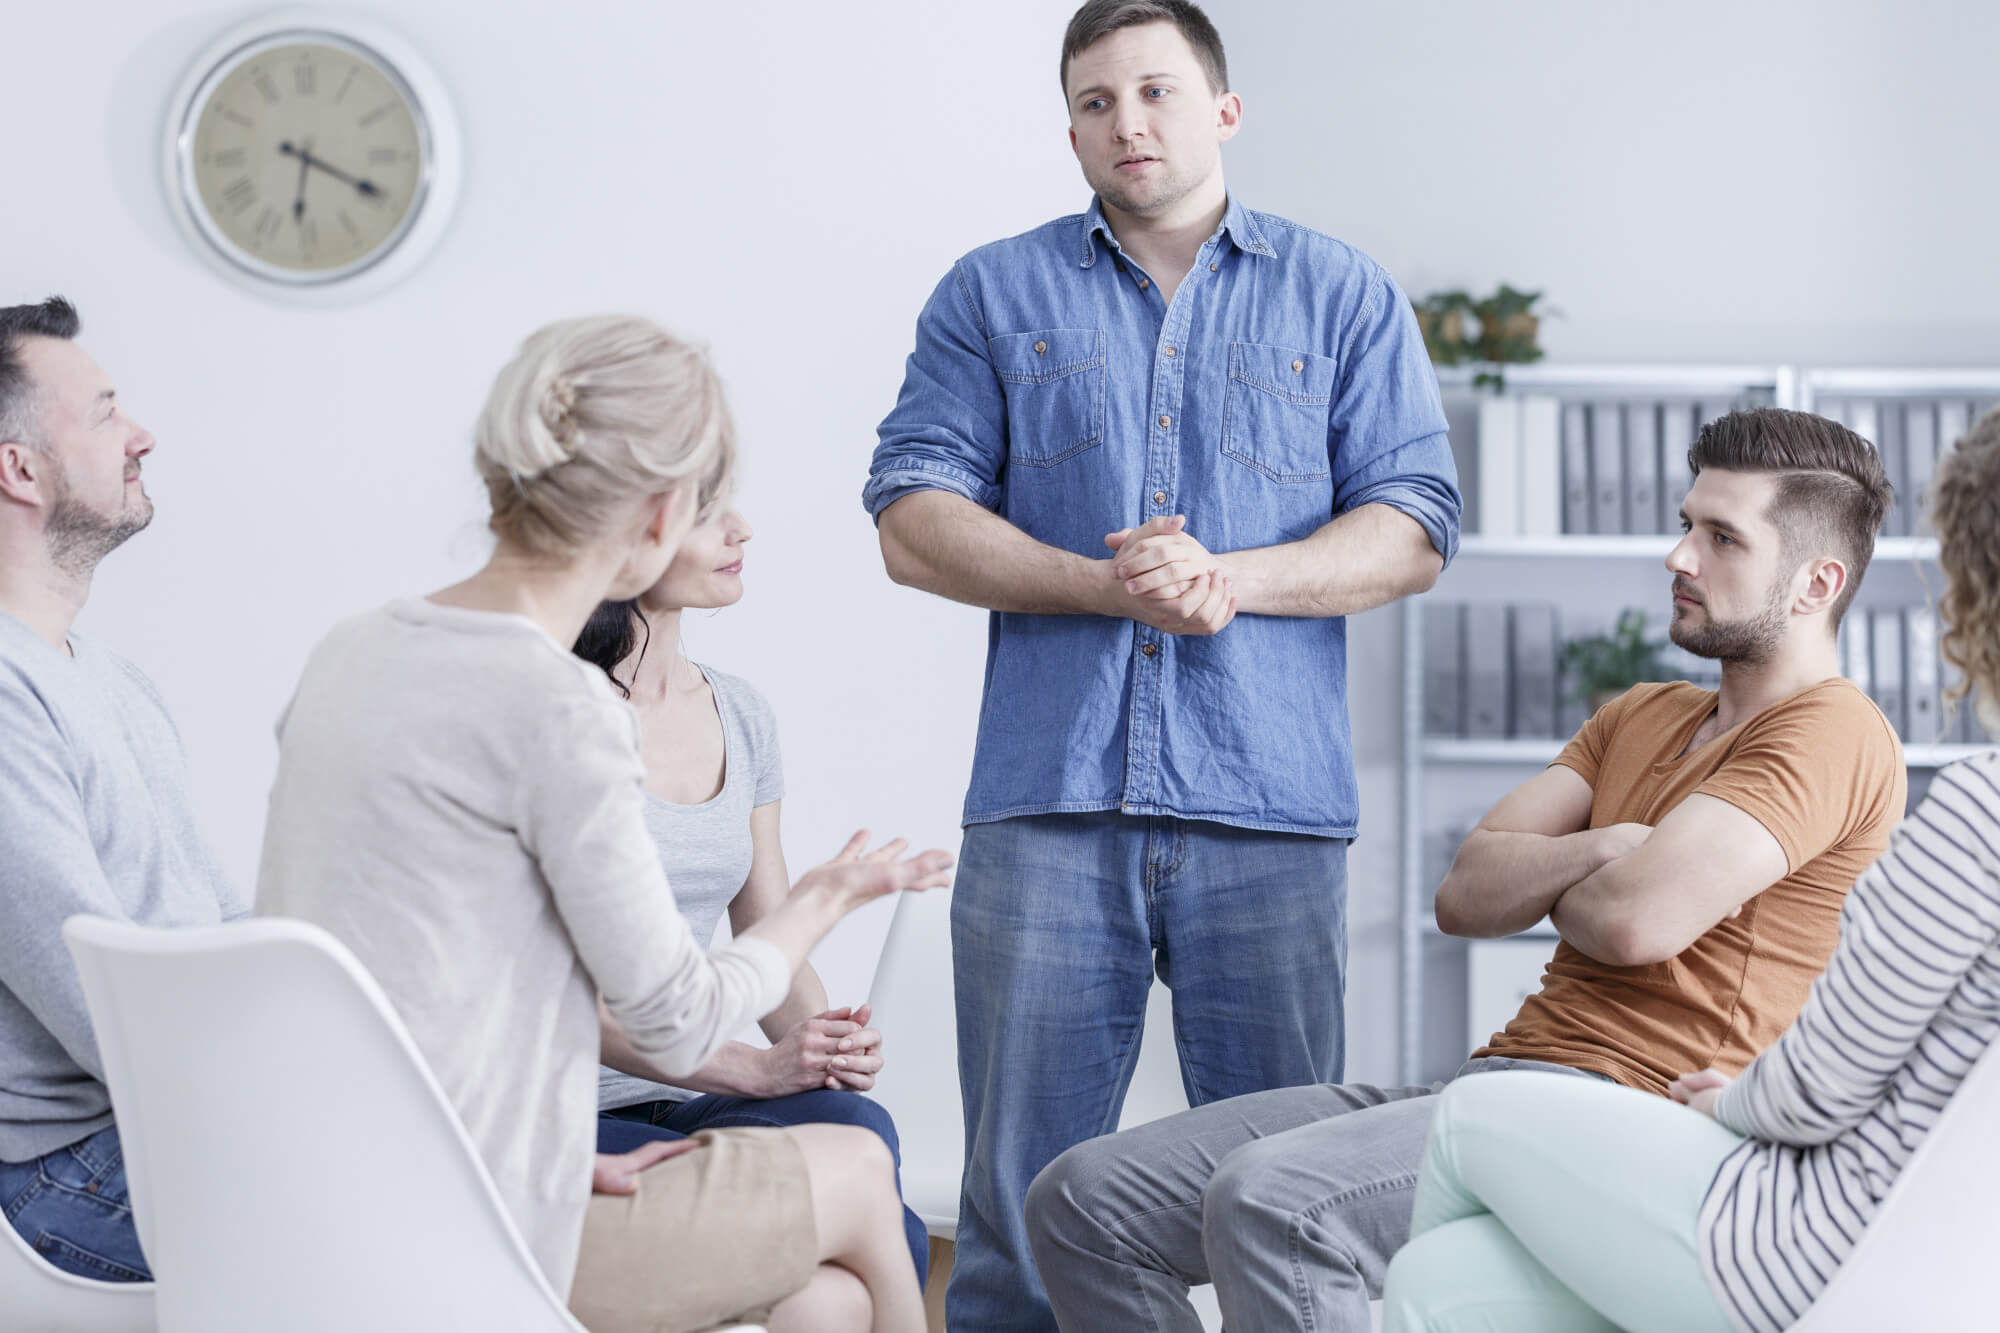 How to Stage an Intervention for a Family Member